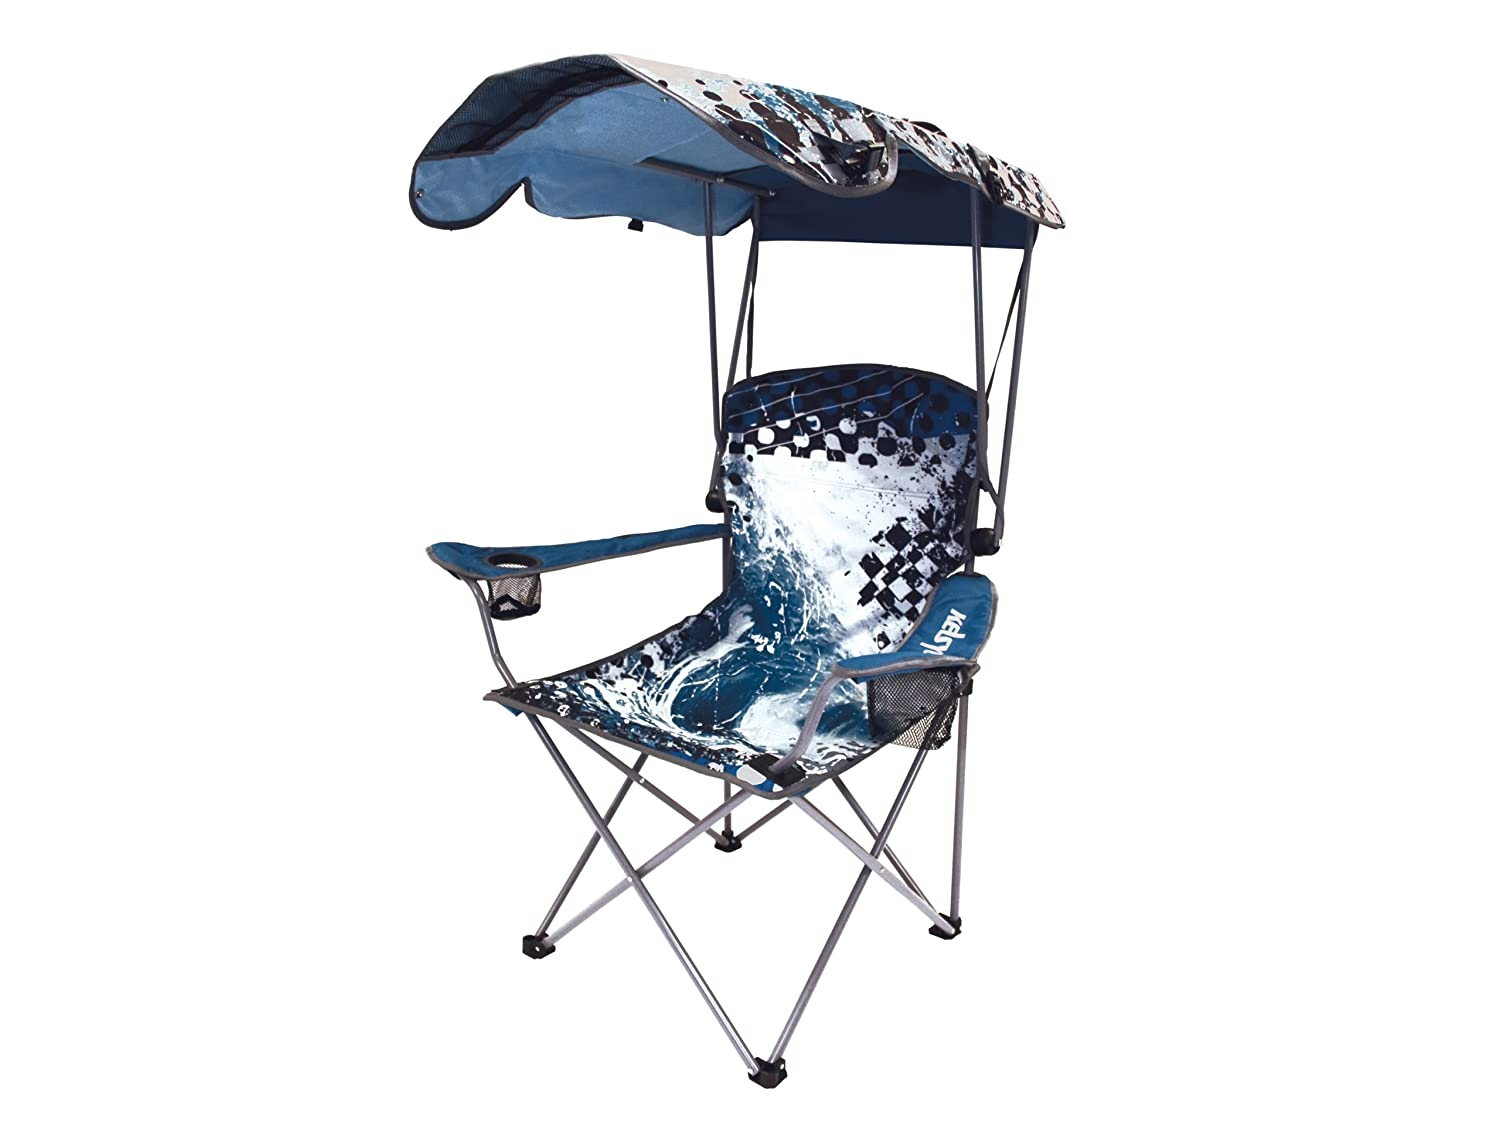 Portable Chair With Canopy : Wave original canopy chair blue portable beach shade